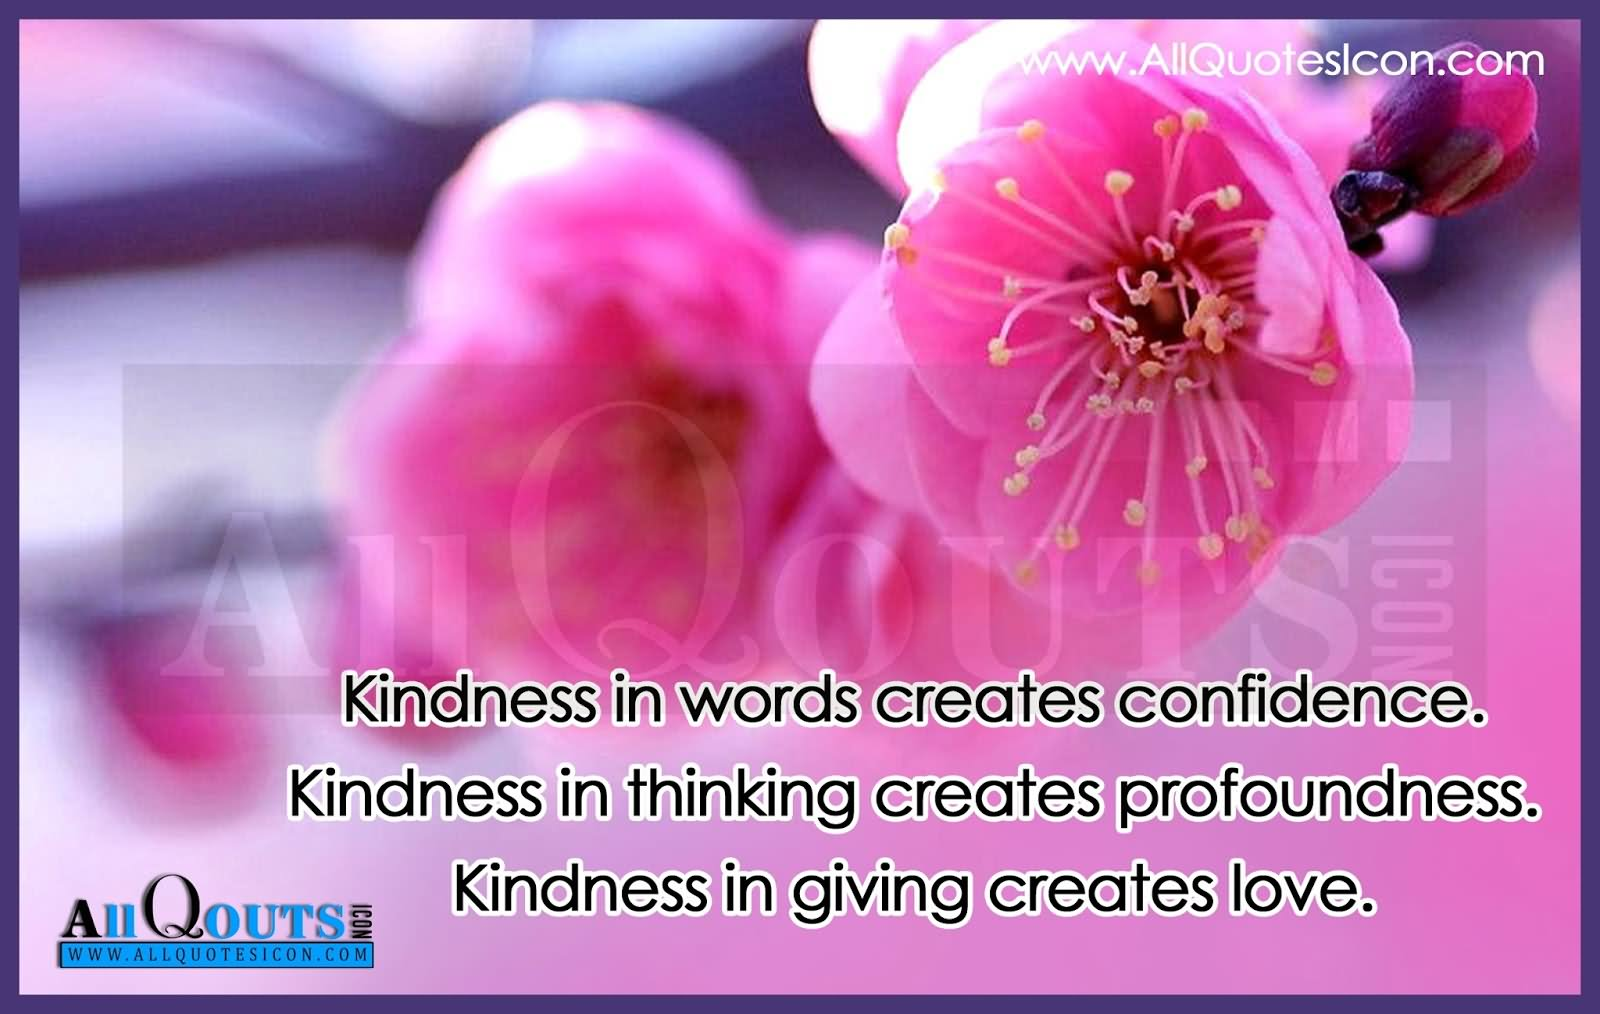 Loving Kindness Quotes Kindness In Words Creates Confidencekindness In Thinking Creates